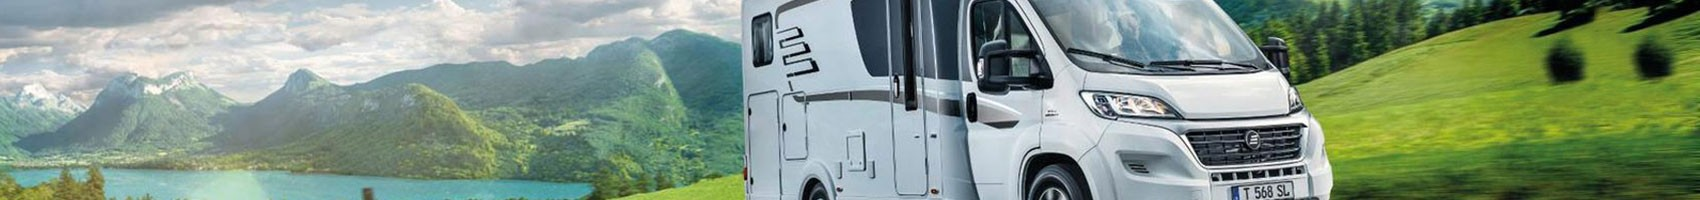 Keeping Your Motorhome Secure